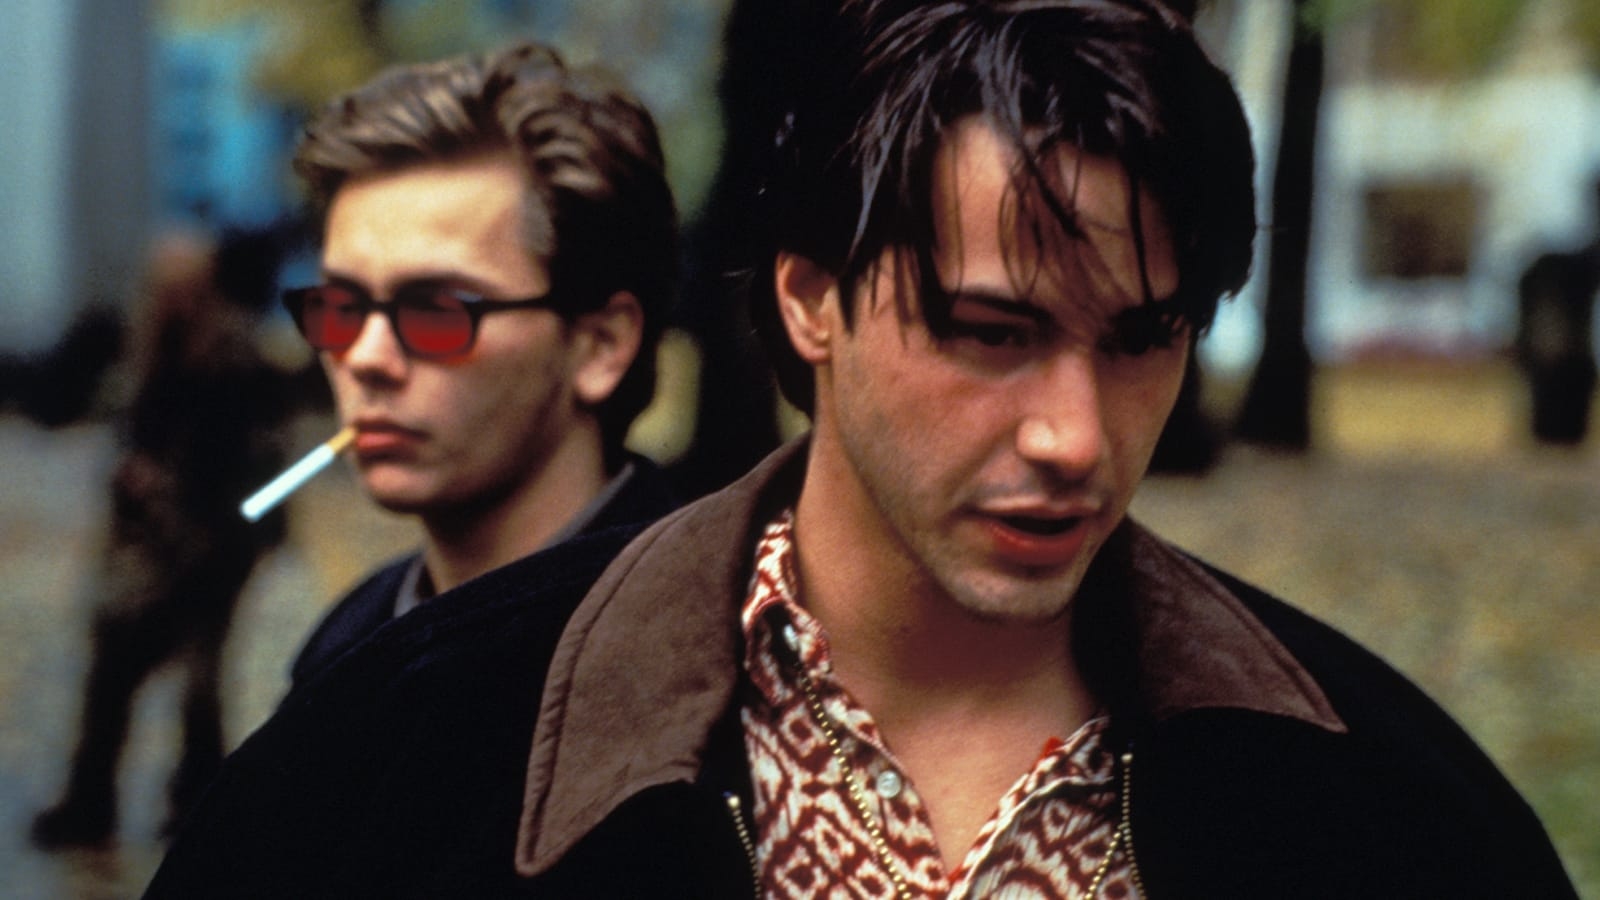 The Criterion Collection - My Own Private Idaho(1991)